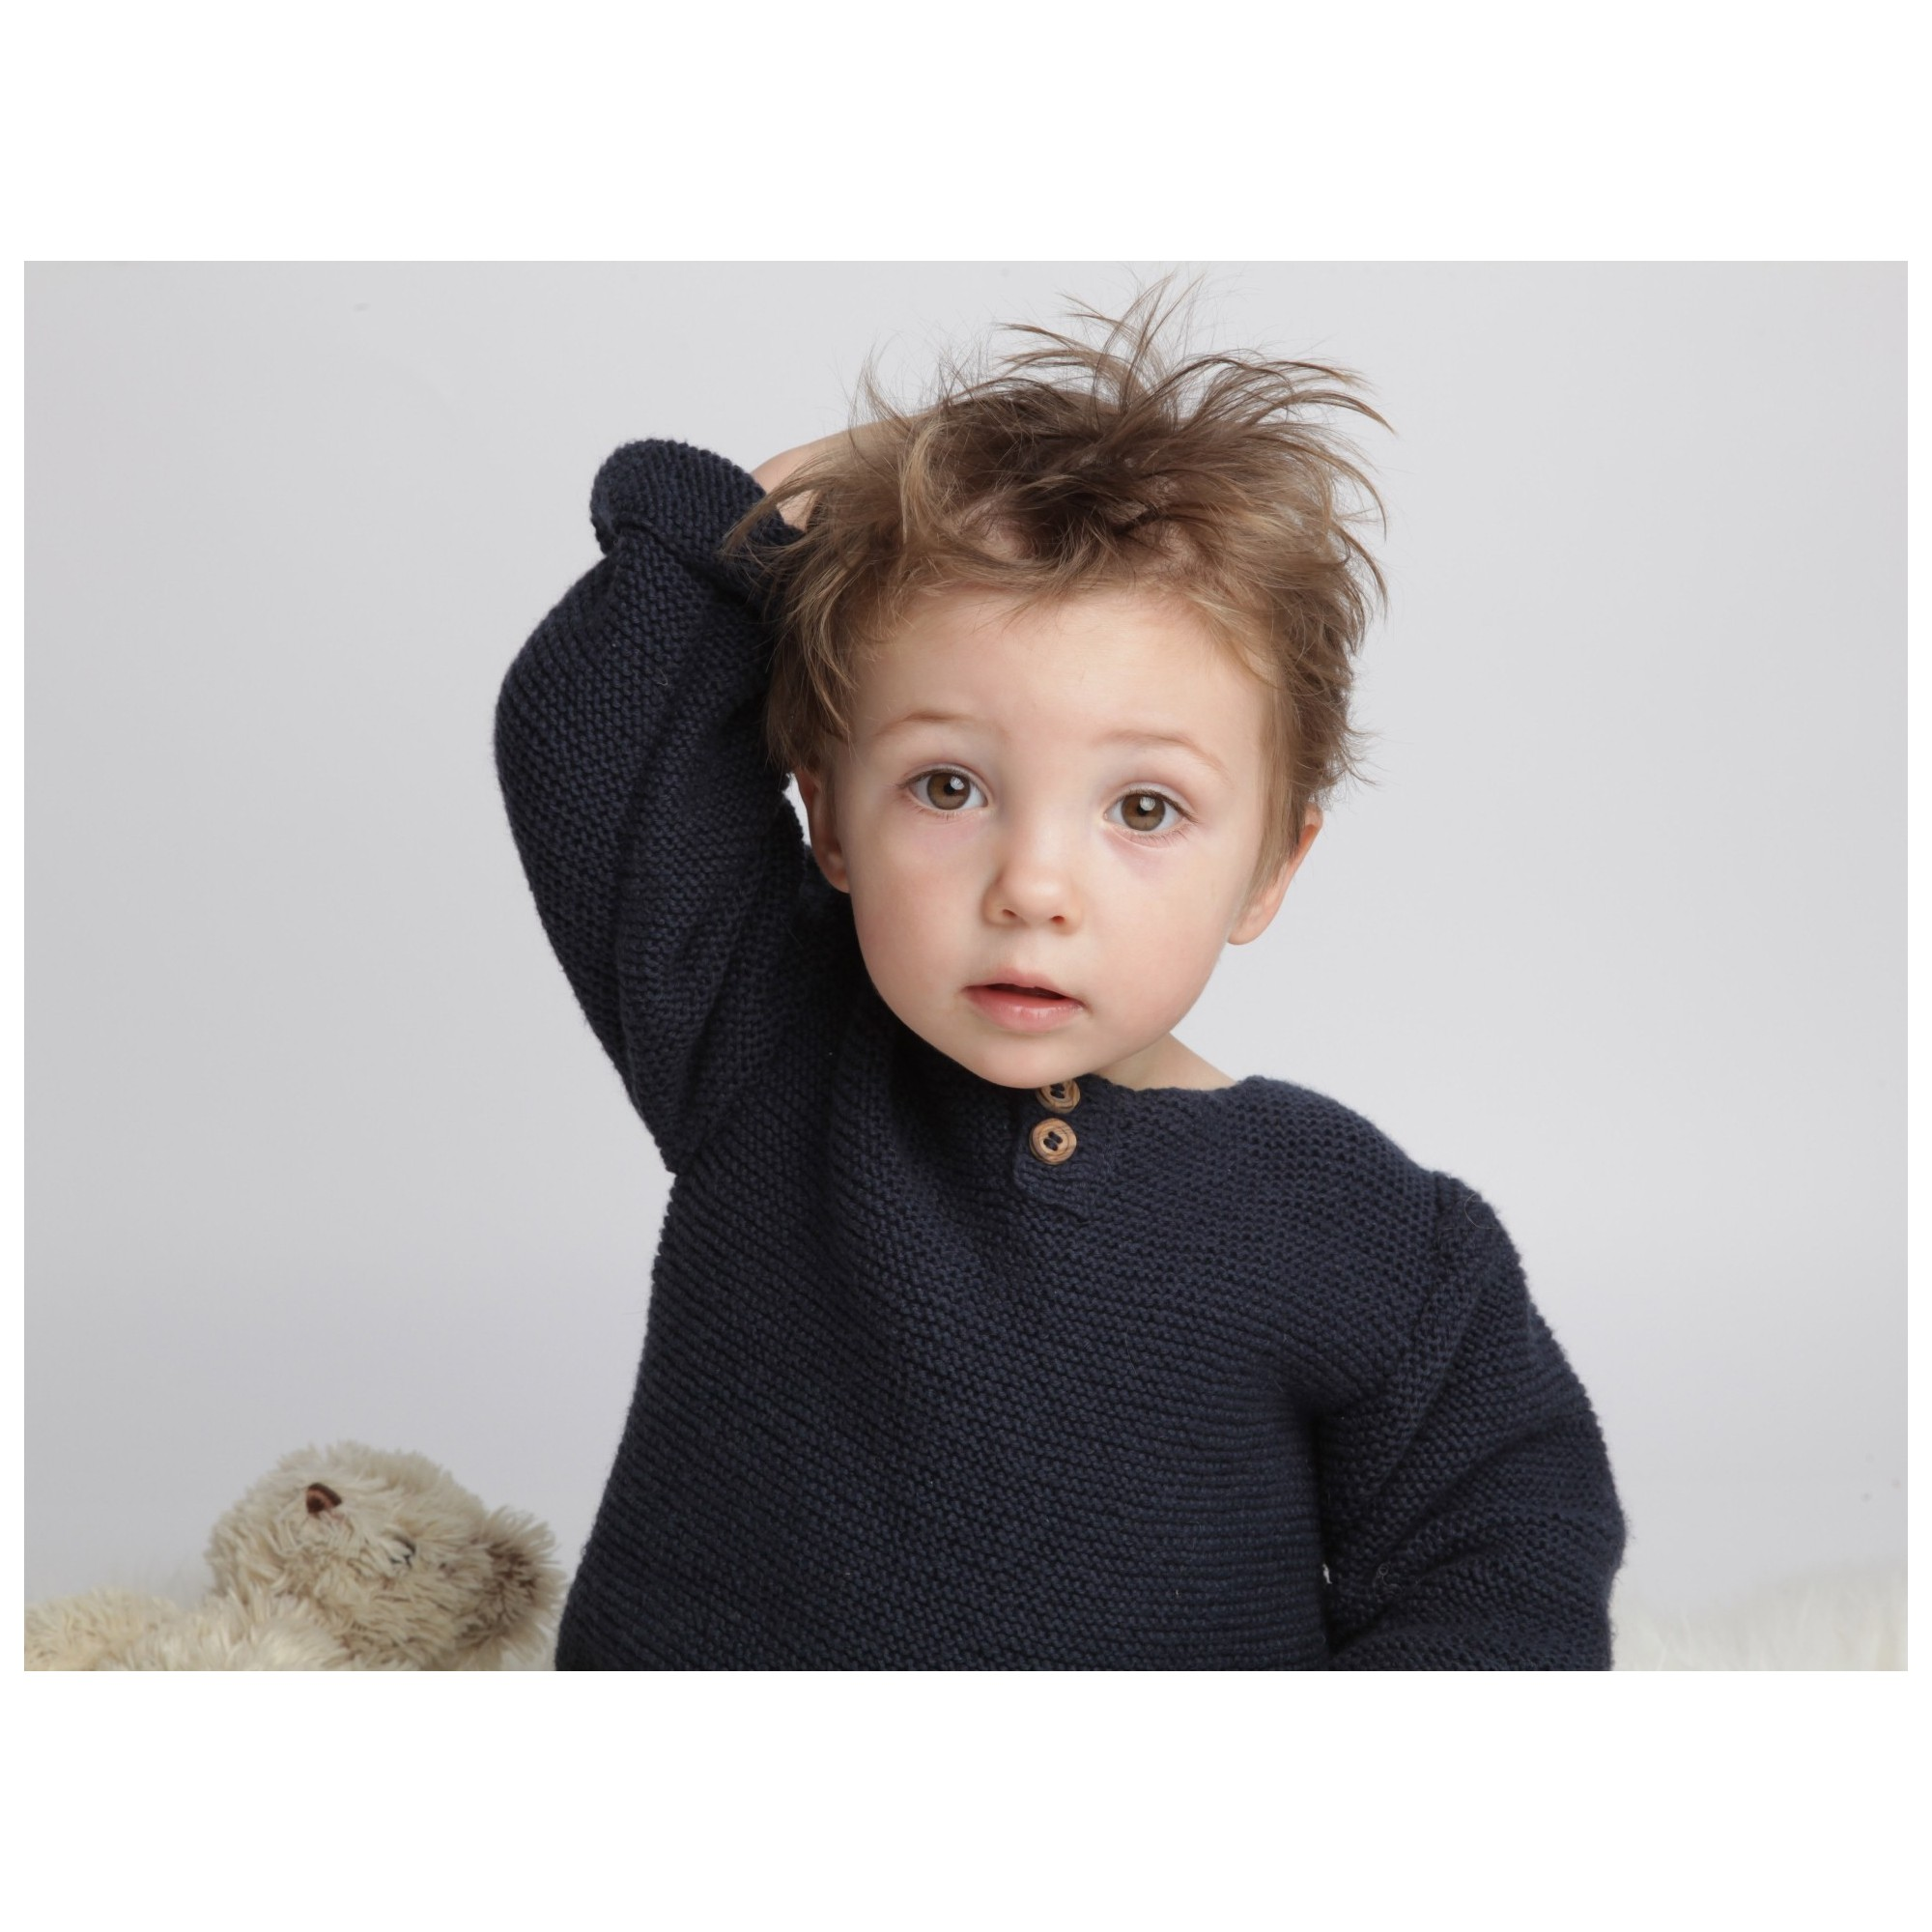 Navy blue baby sweater in moss stitch made from cotton and cachemire - 2